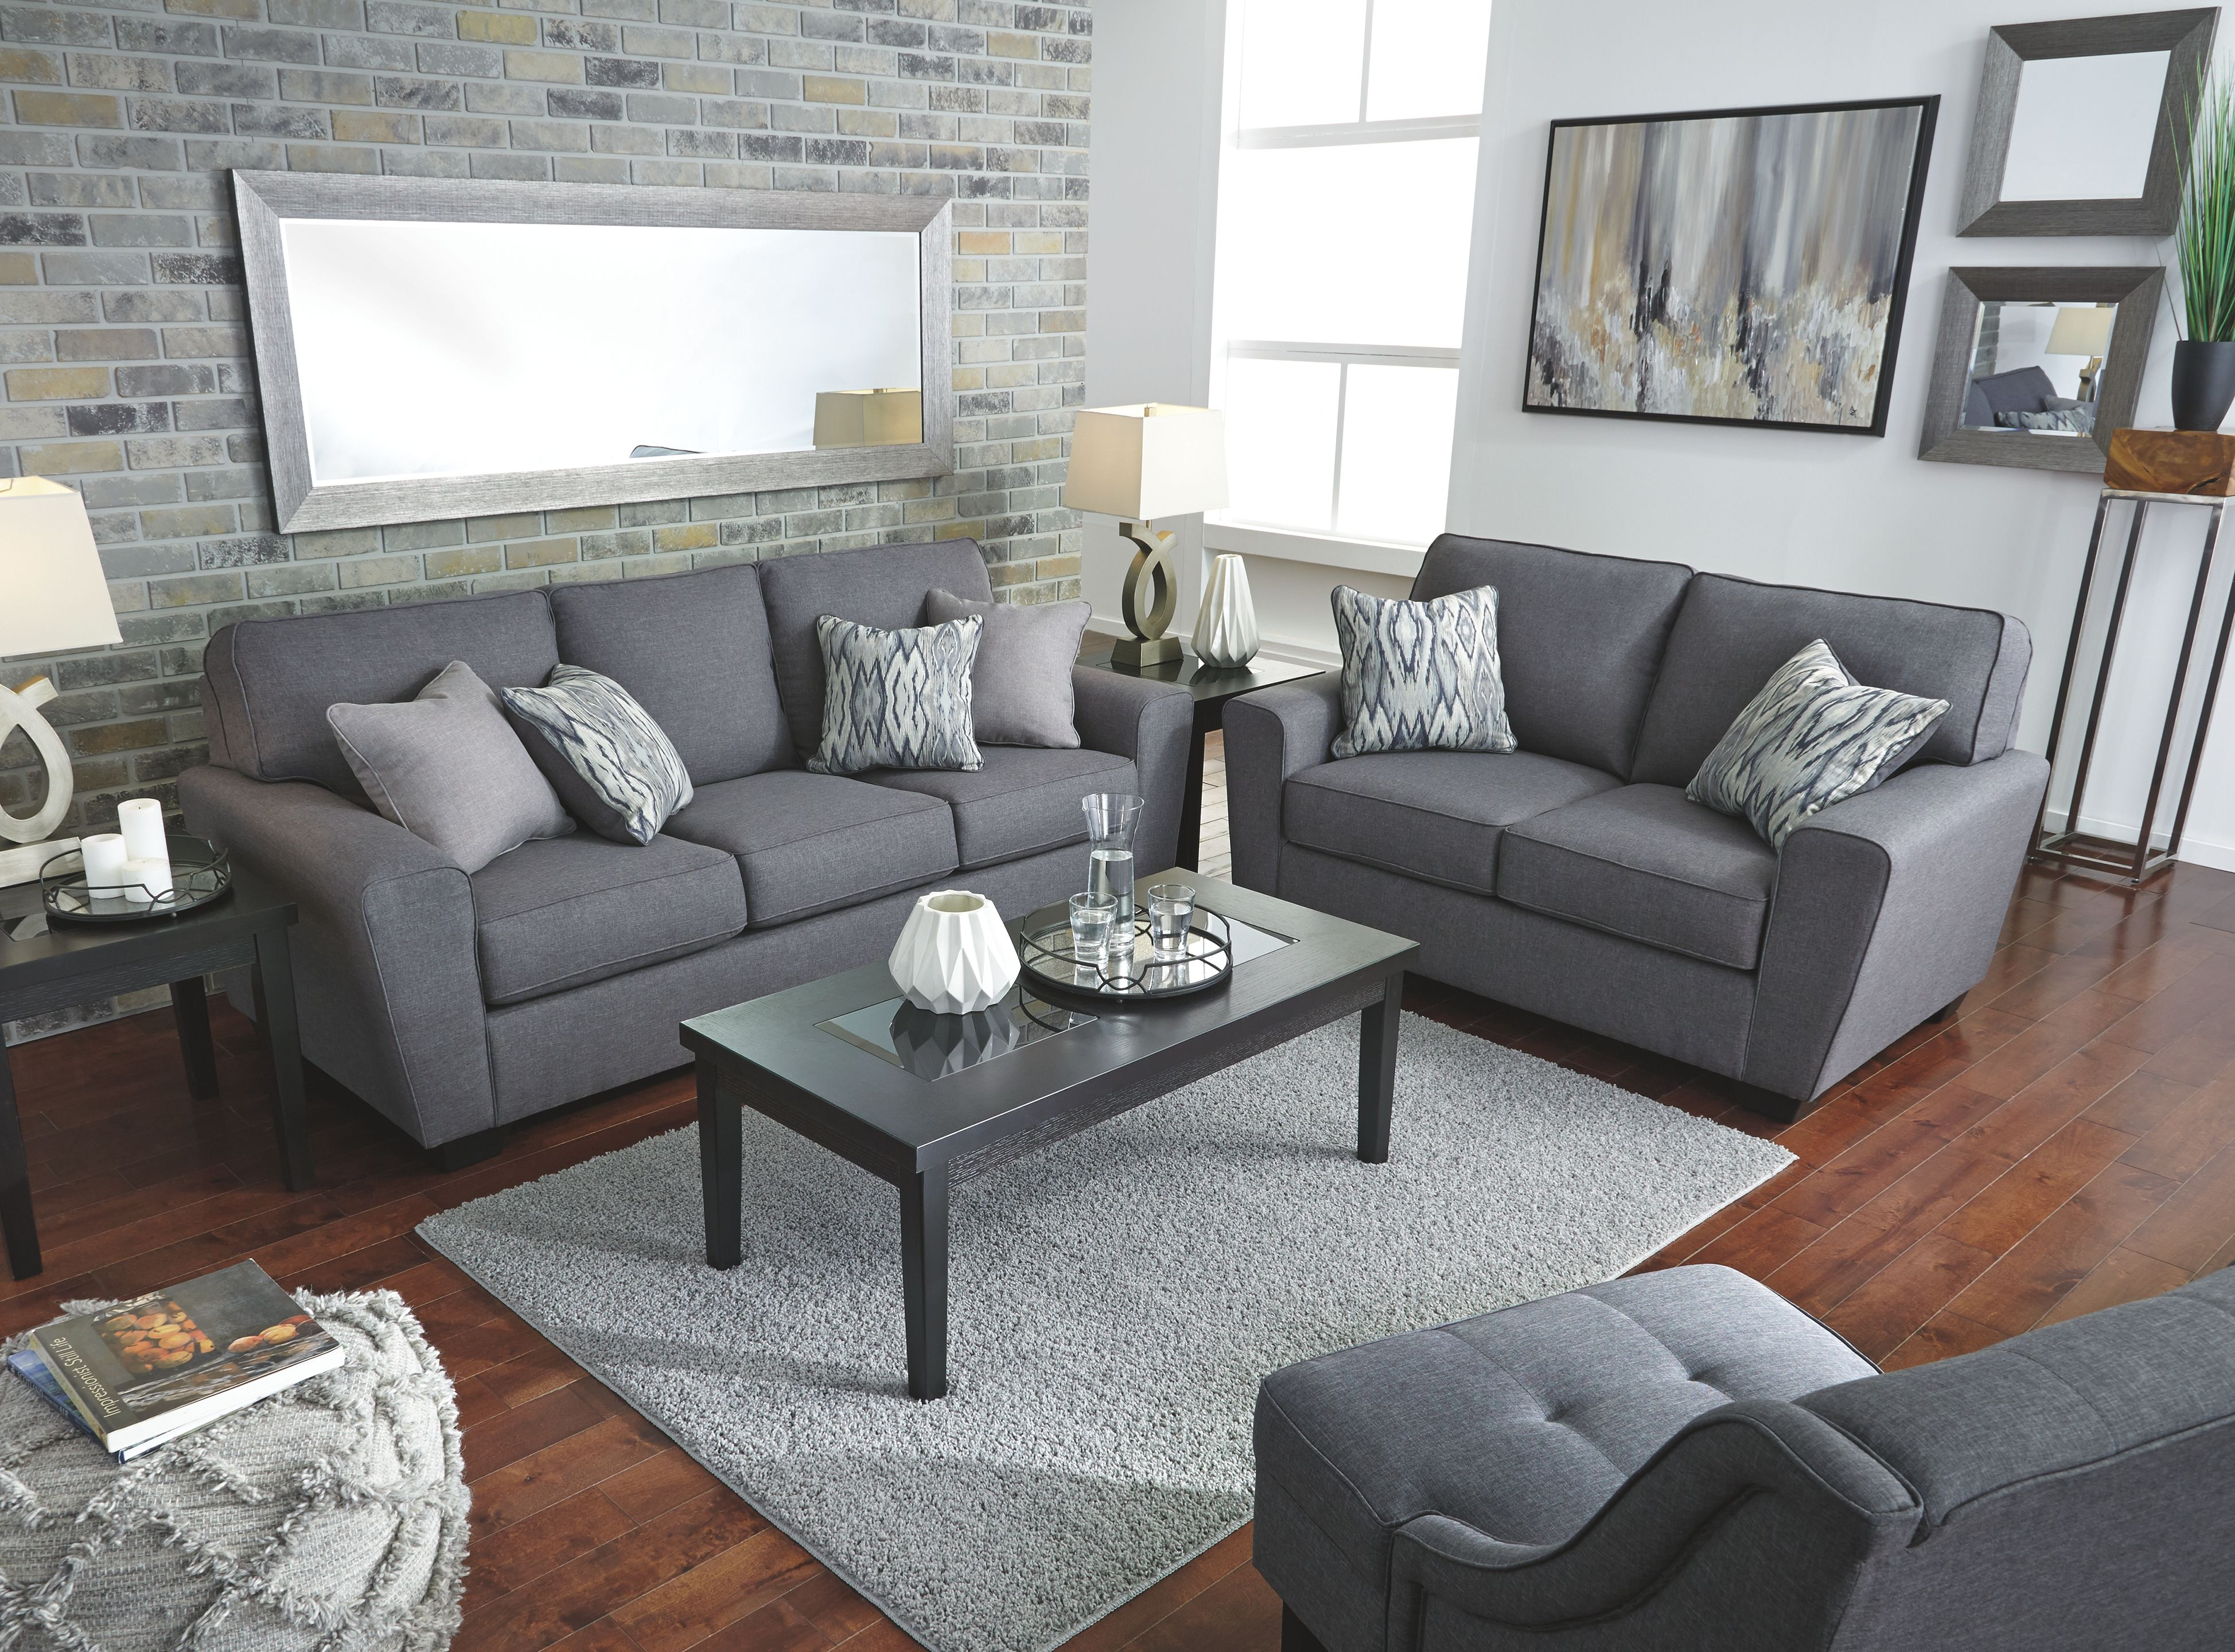 Furniture Living Room Calion Accent Chair Gunmetal Products In 2019 Pinterest